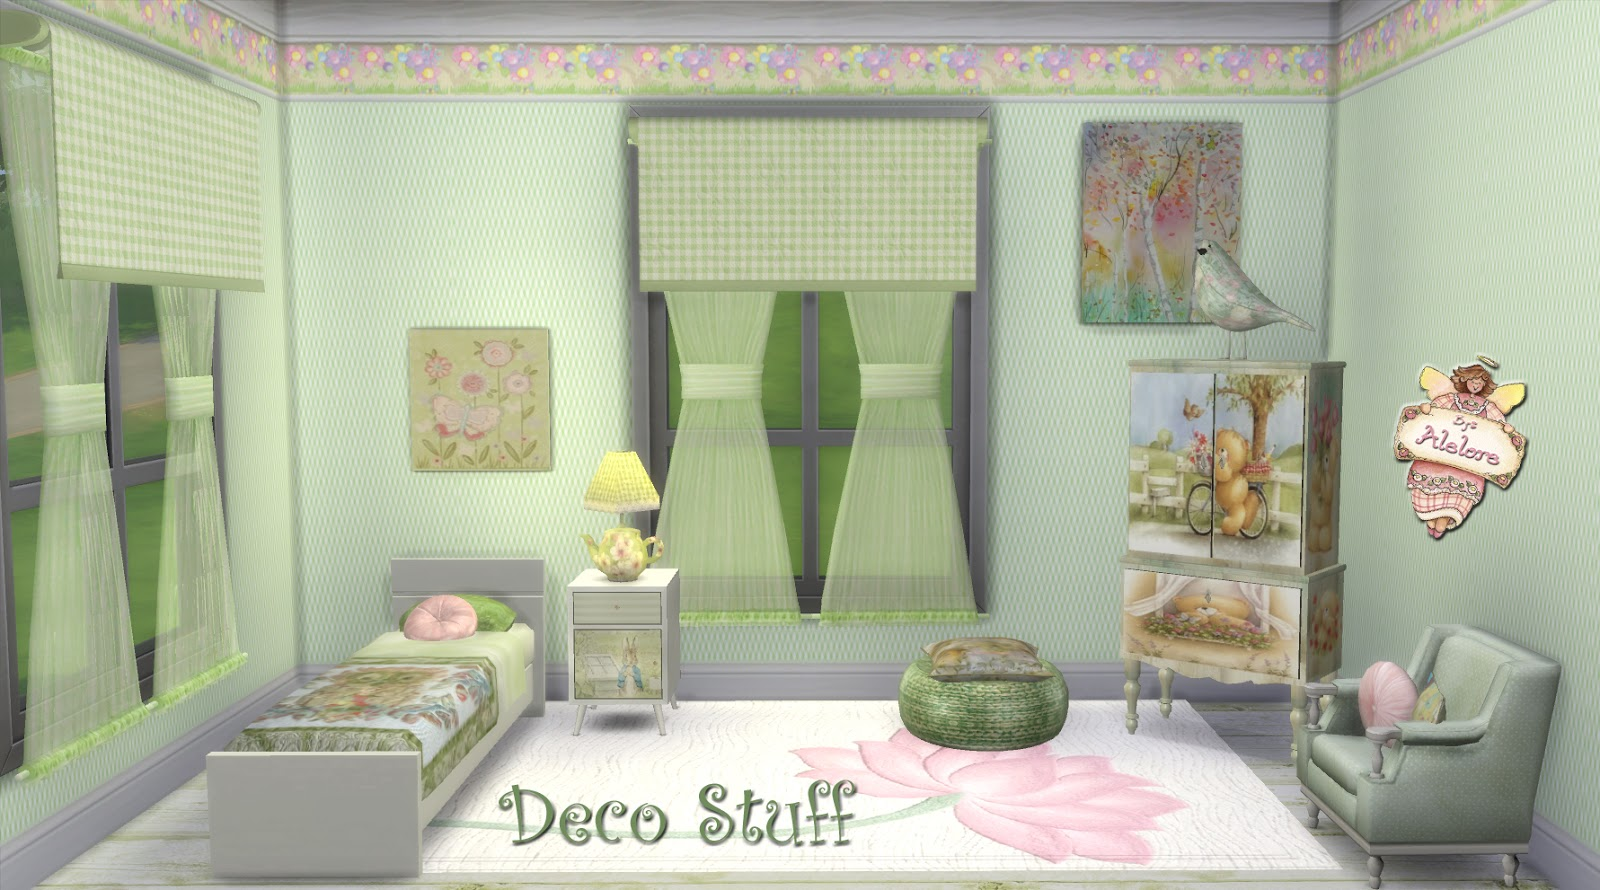 Alelore sims blog deco stuff for Deco appartement sims 4